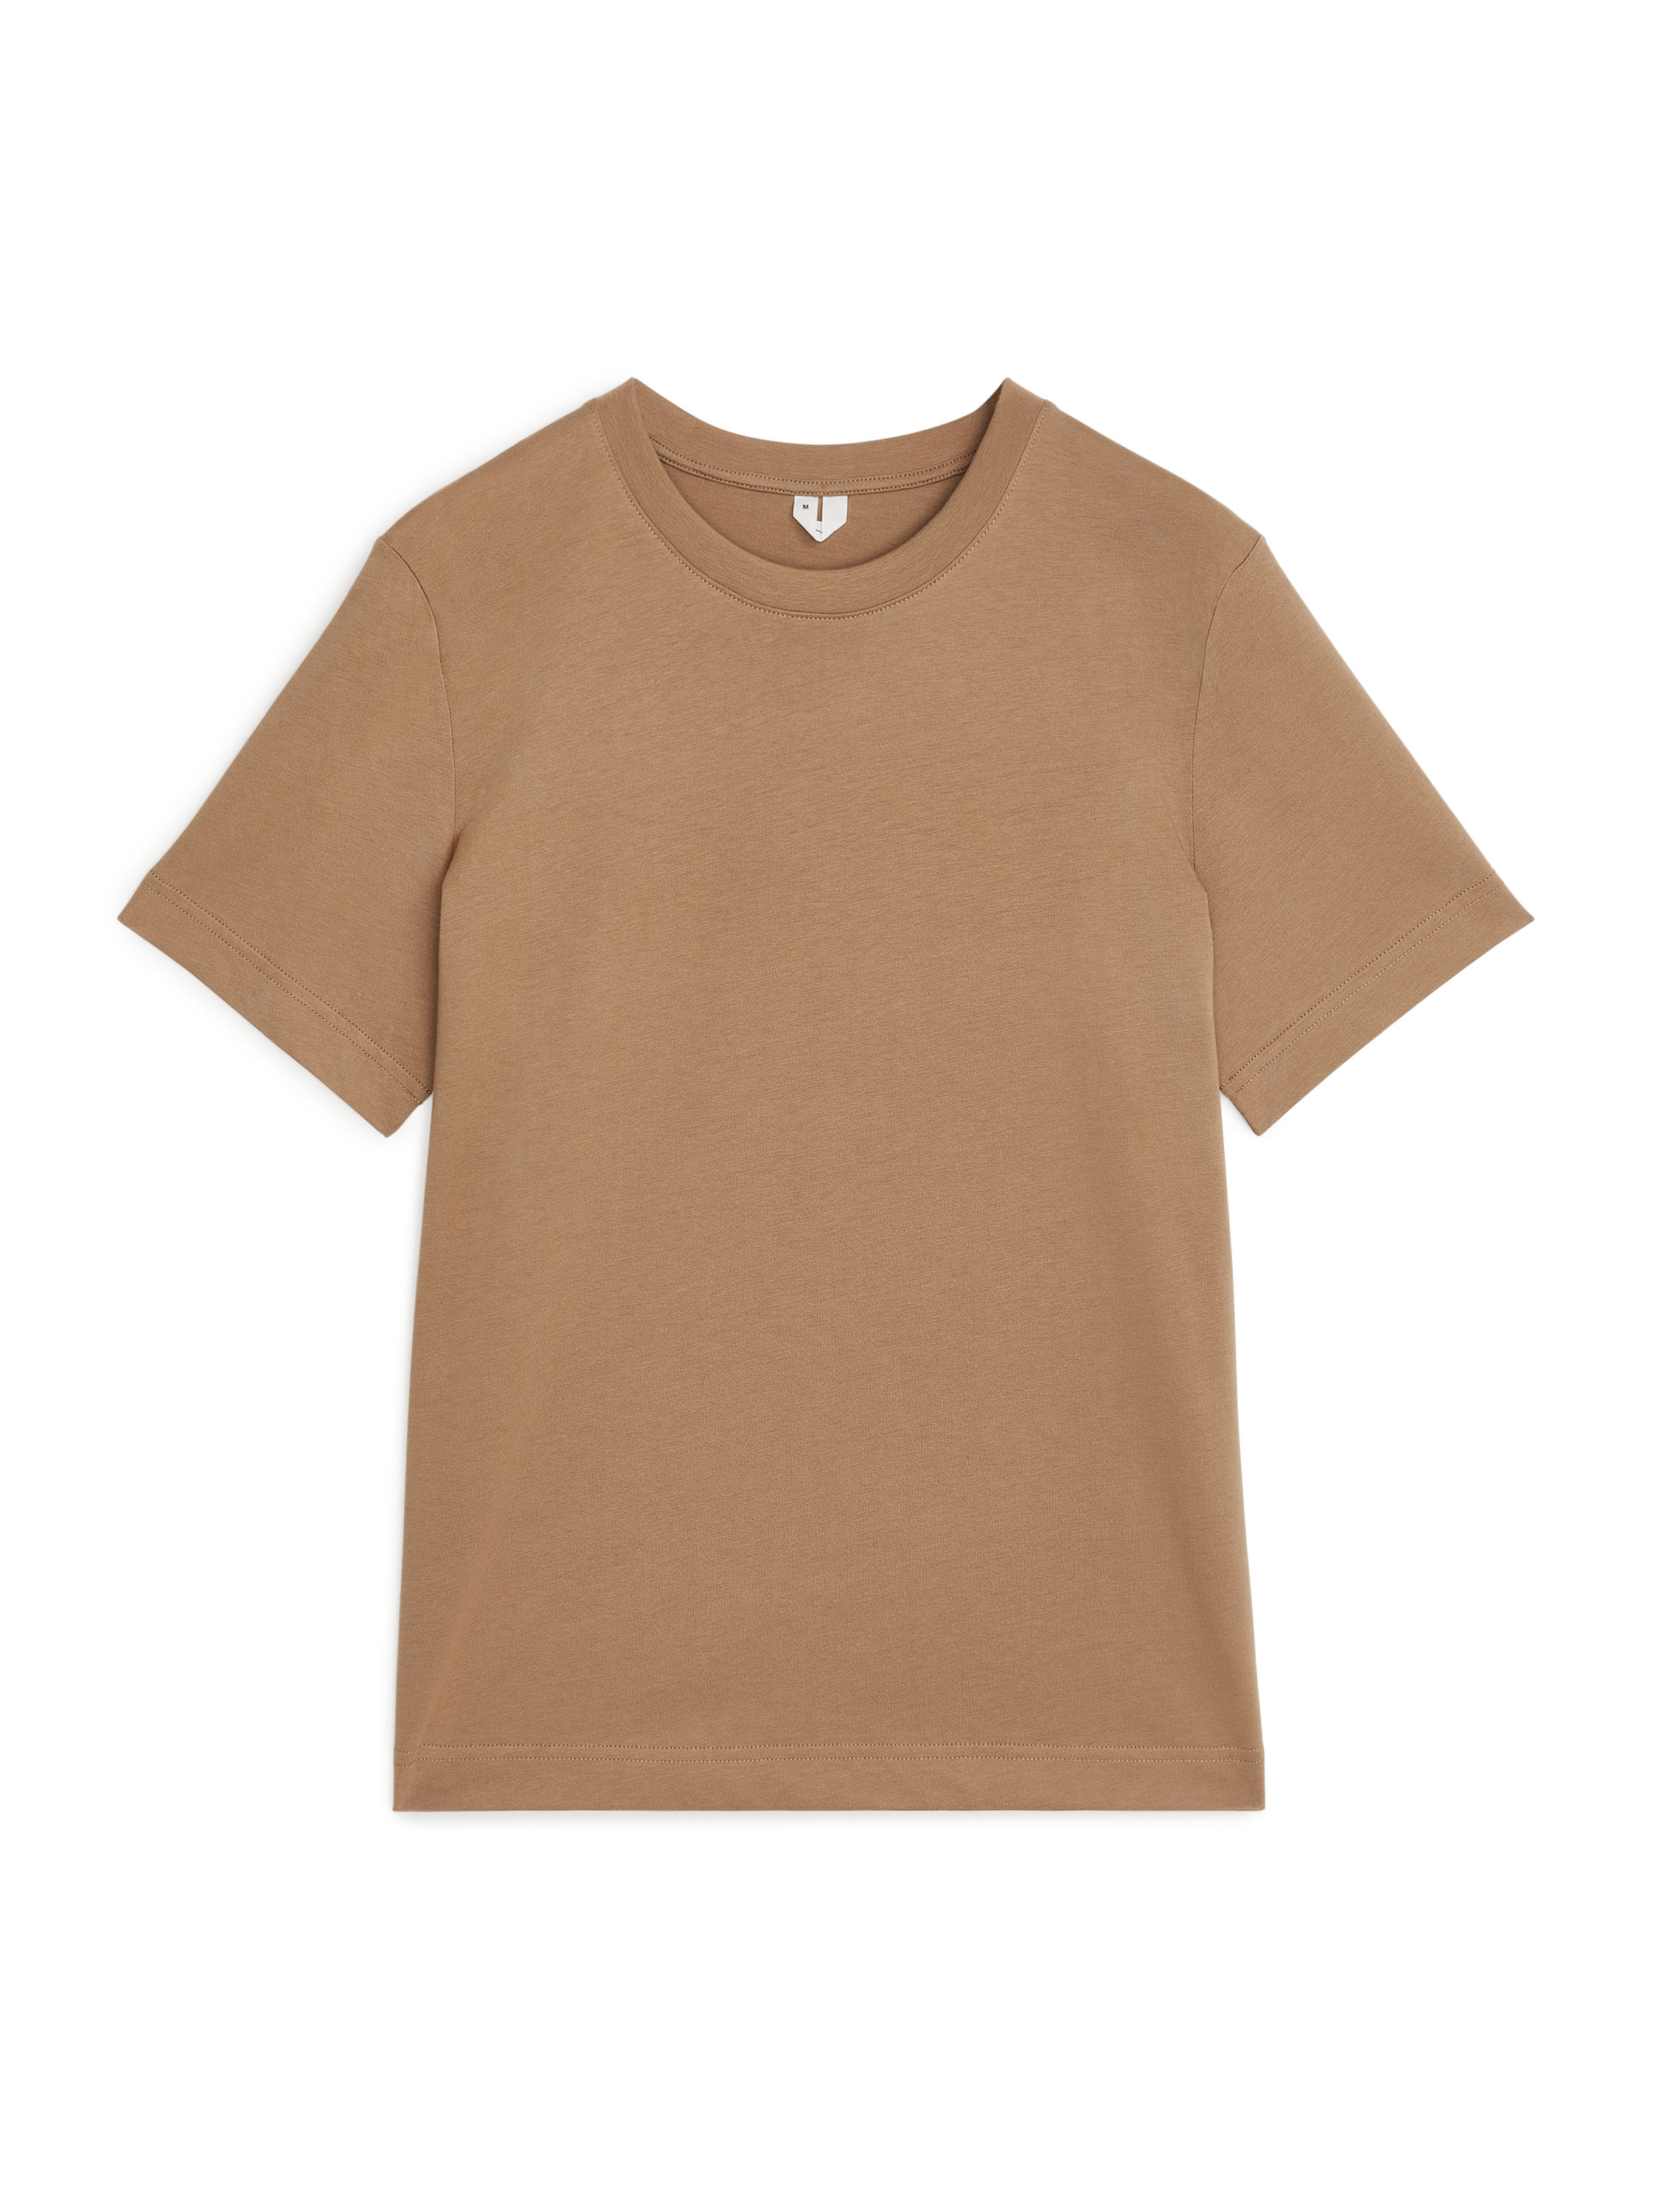 Fabric Swatch image of Arket crew-neck t-shirt in beige